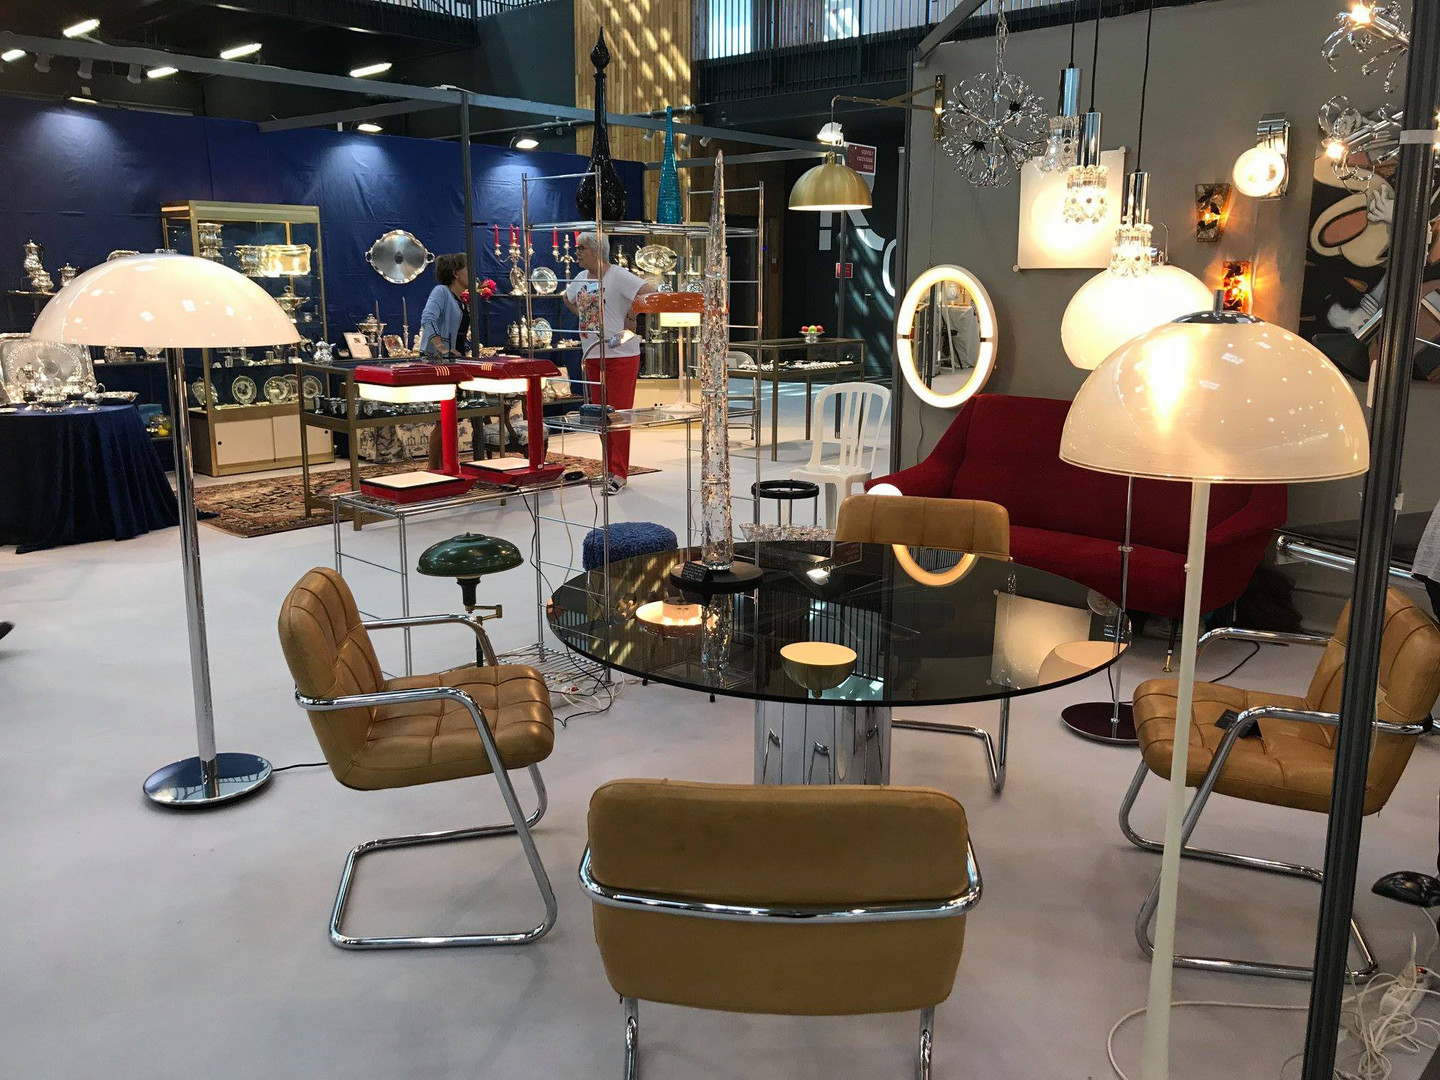 Salon_des_antiquaires_clermont_ferrand_4